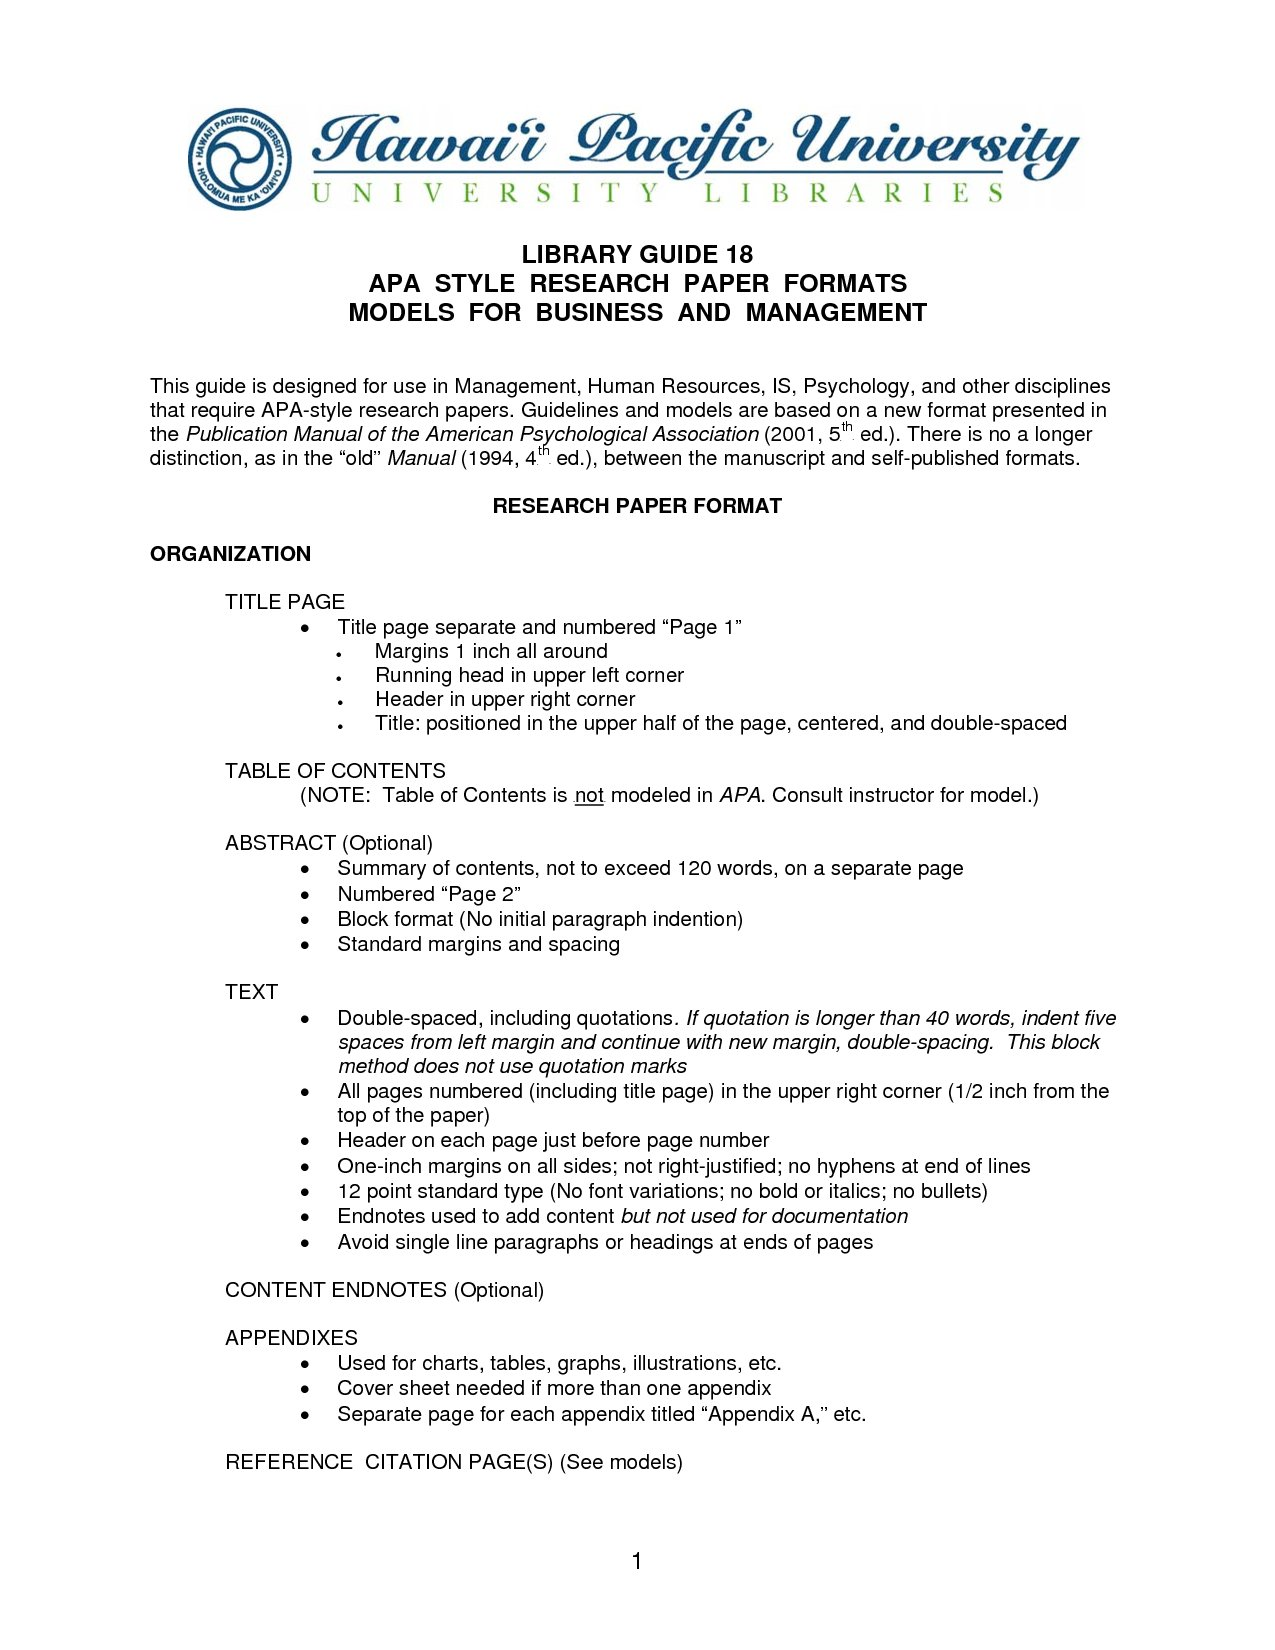 020 Research Statement Example Template Dgpr1ovi Paper Business Topics For College Unique Students Full